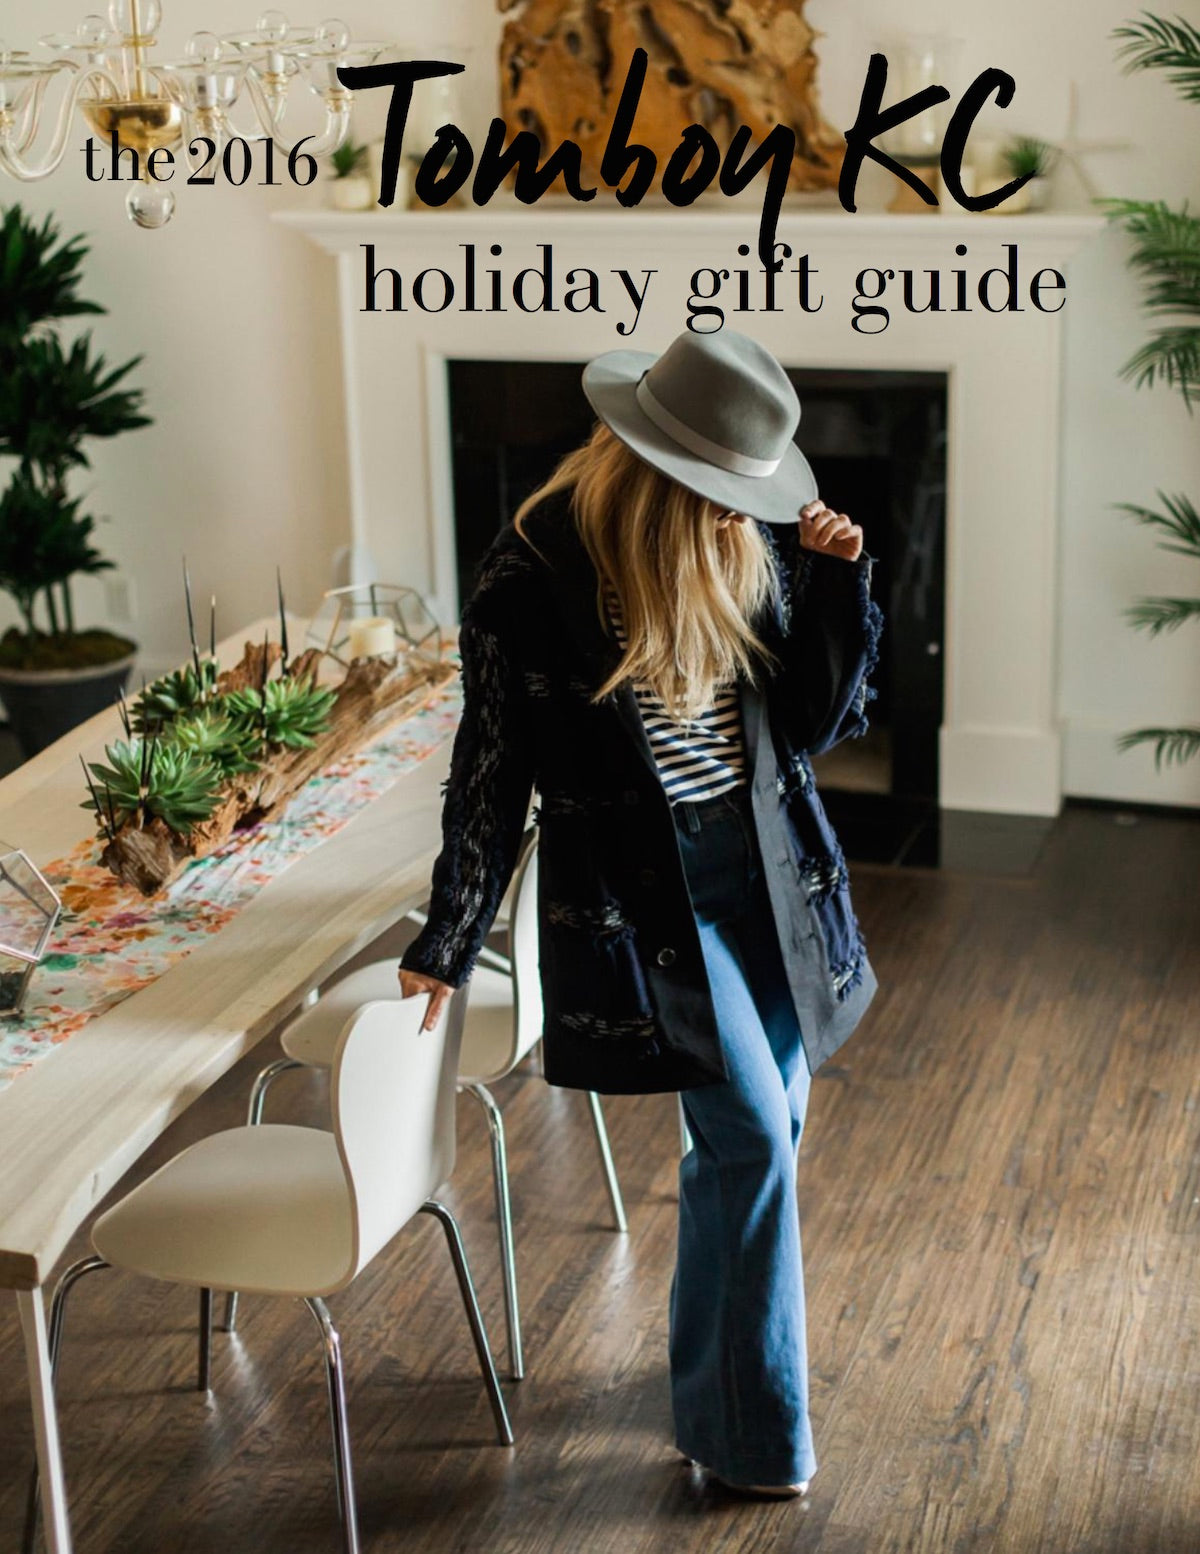 fashion holiday gift guide 2016 - tomboy kc